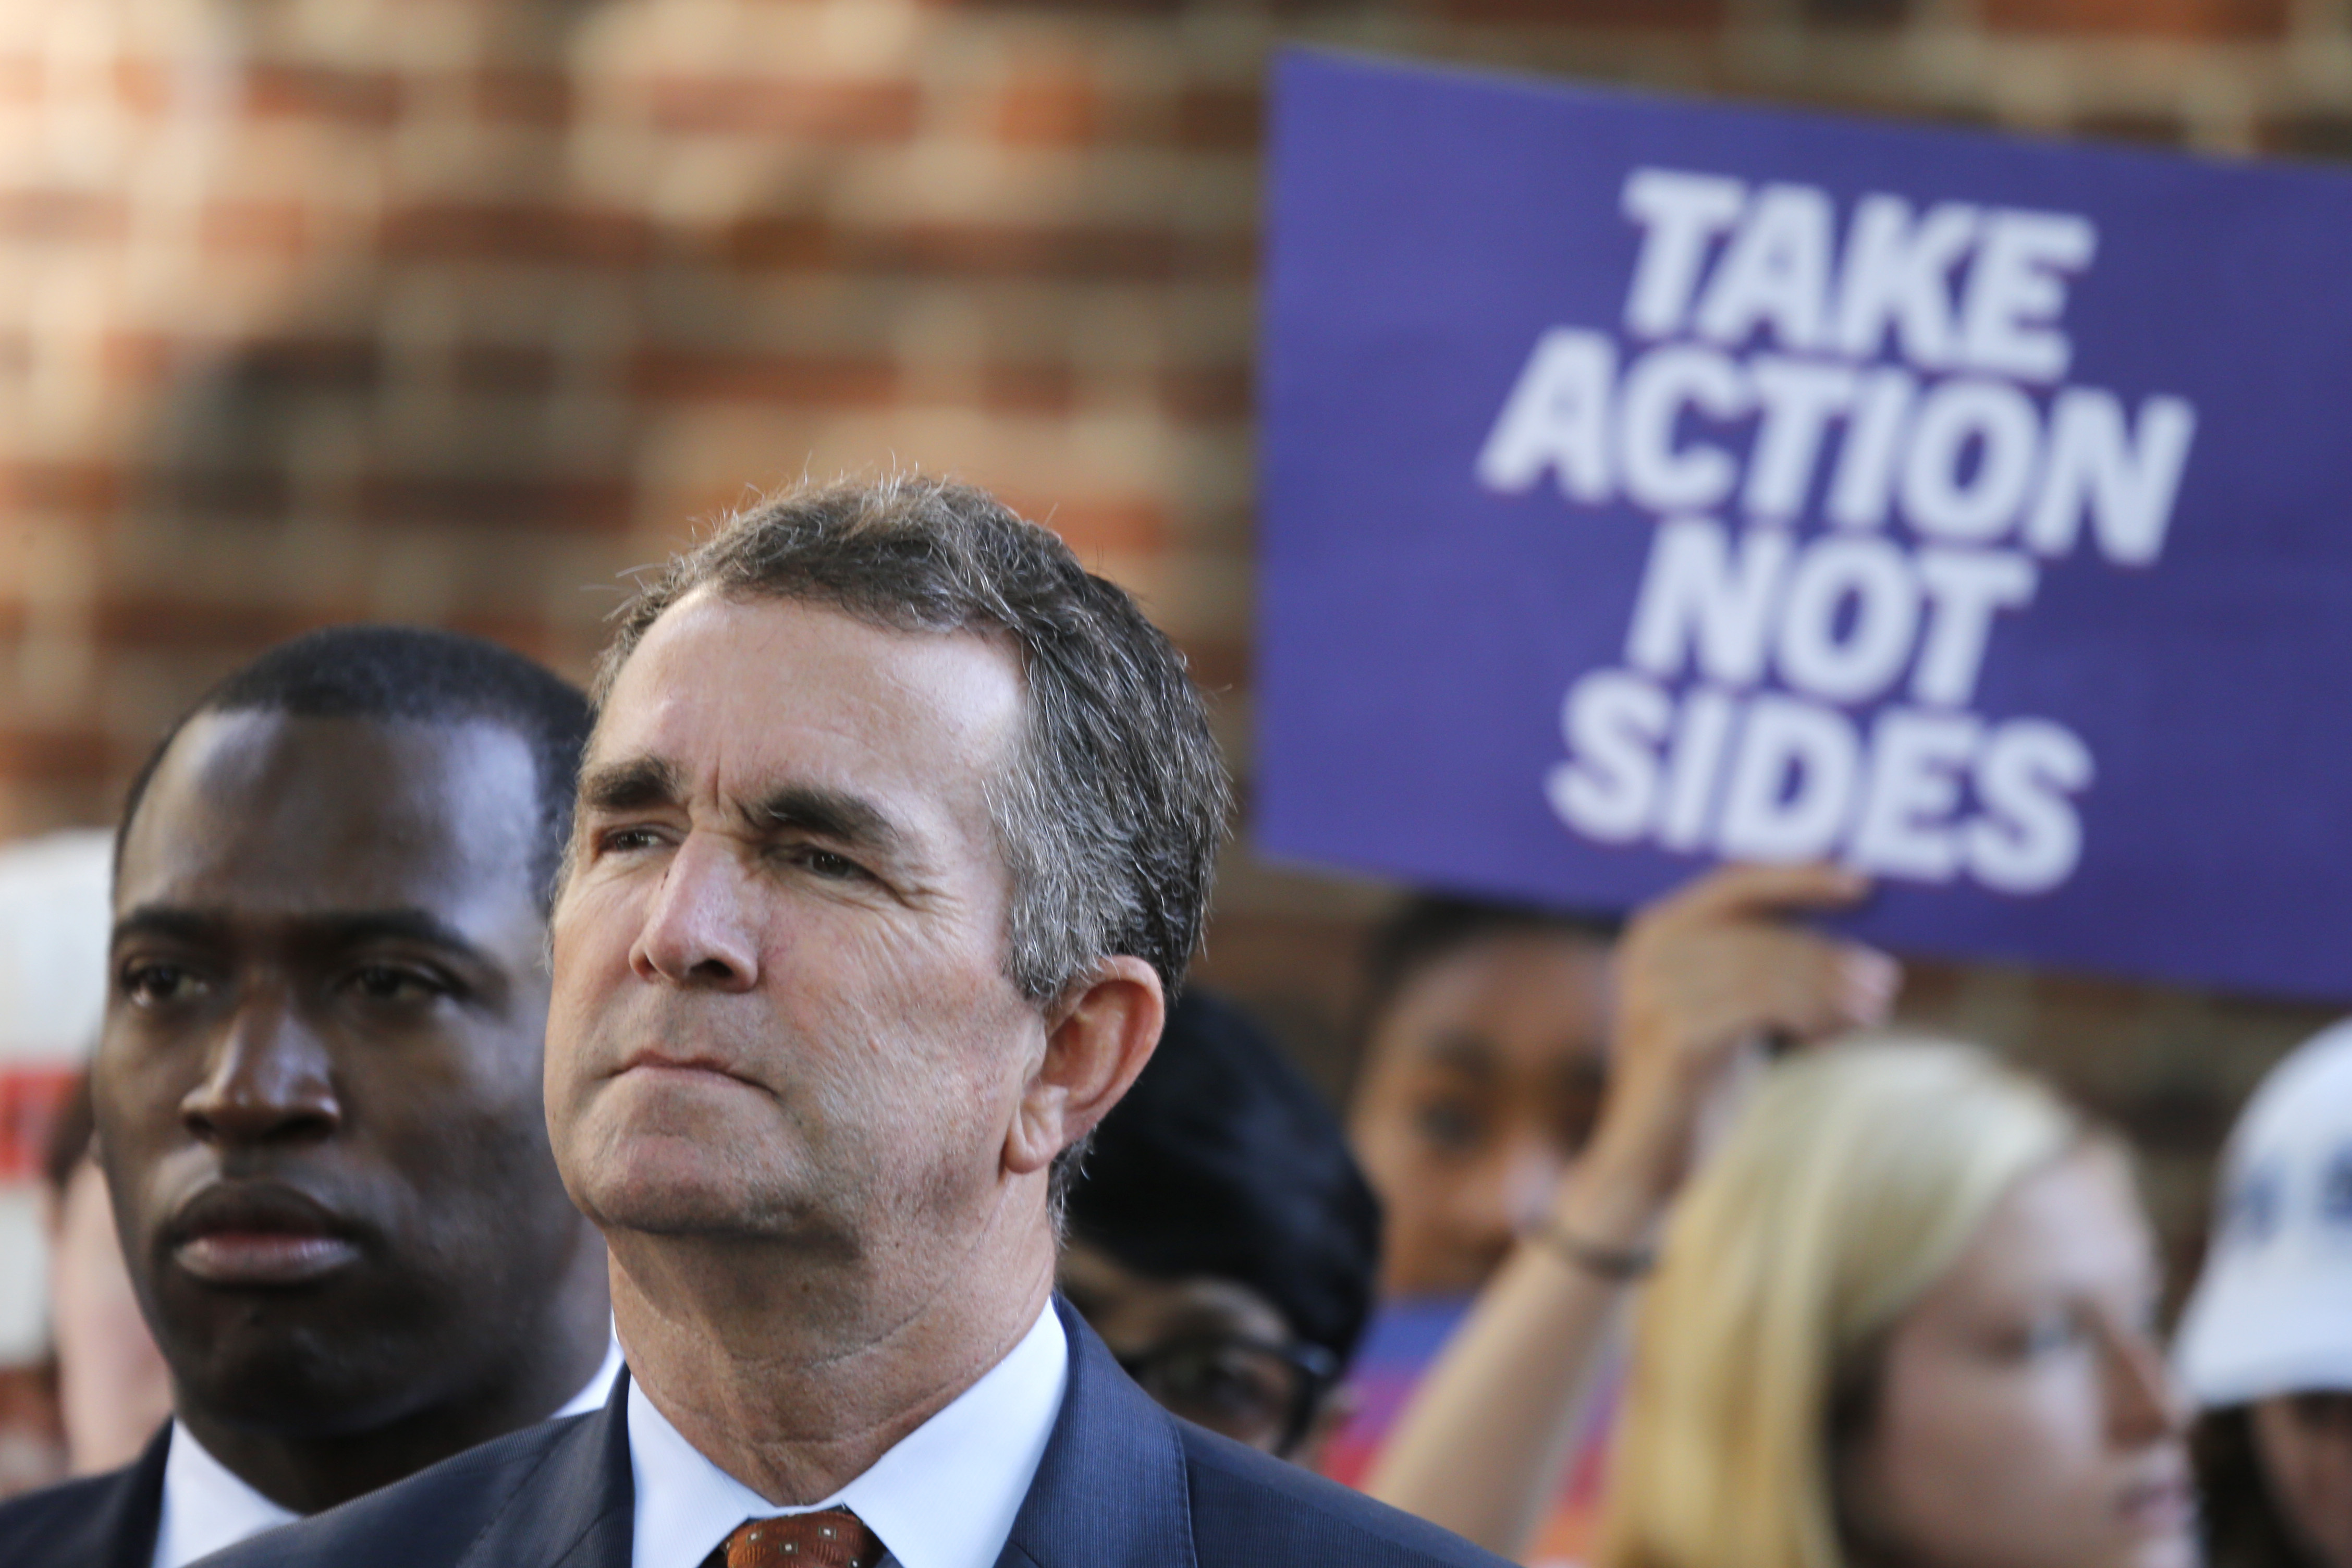 Blackface scandal dampens Virginia governors fundraising